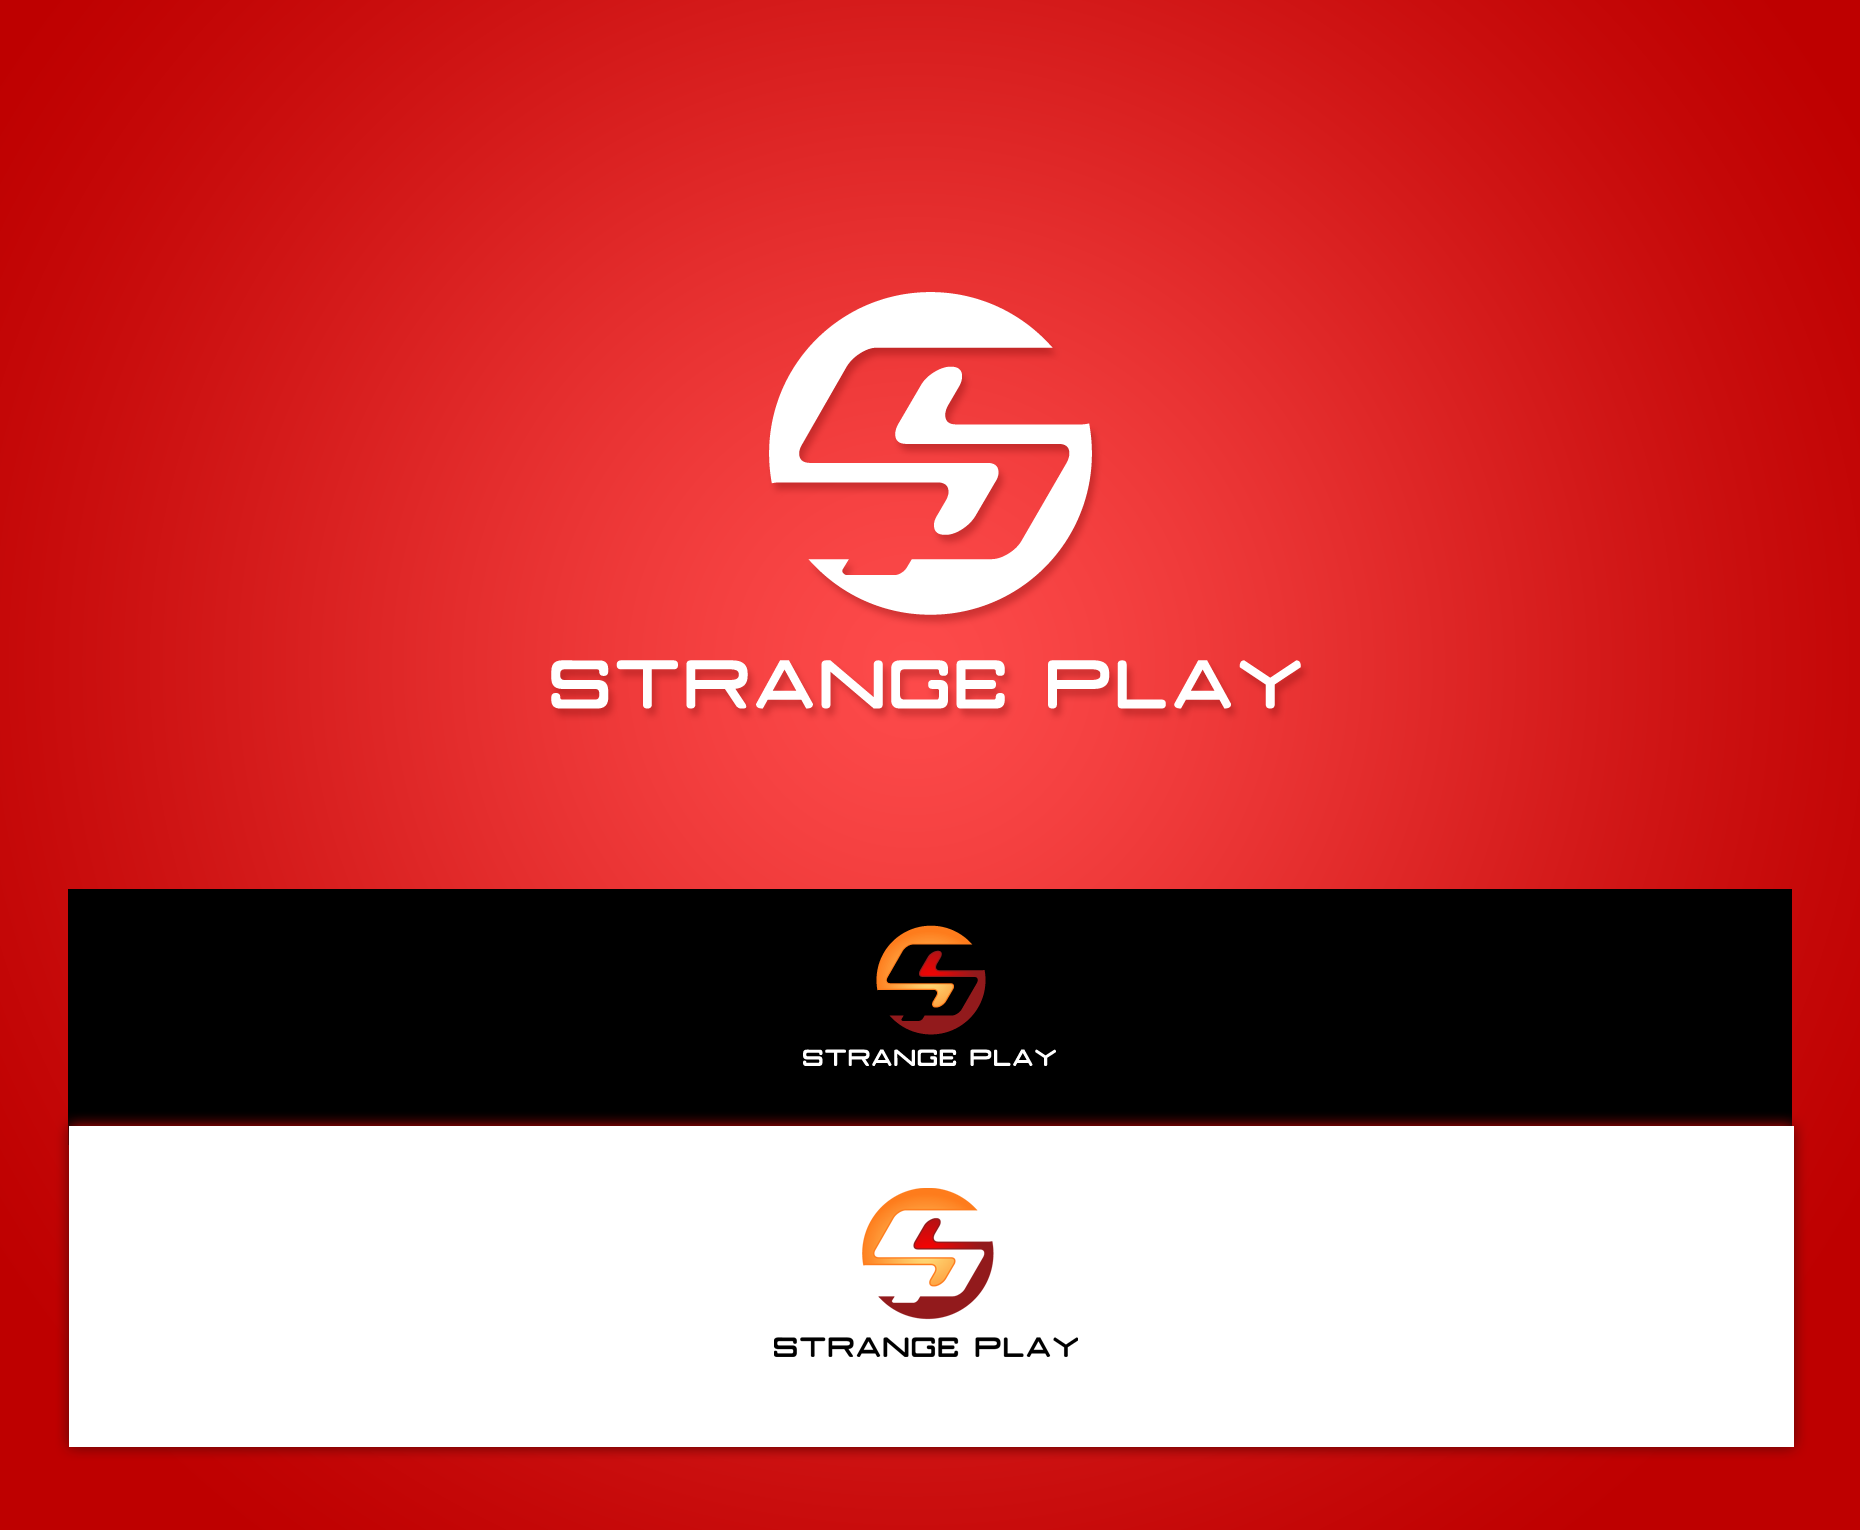 Logo Design by Yans - Entry No. 68 in the Logo Design Contest Strange Play Logo Design.